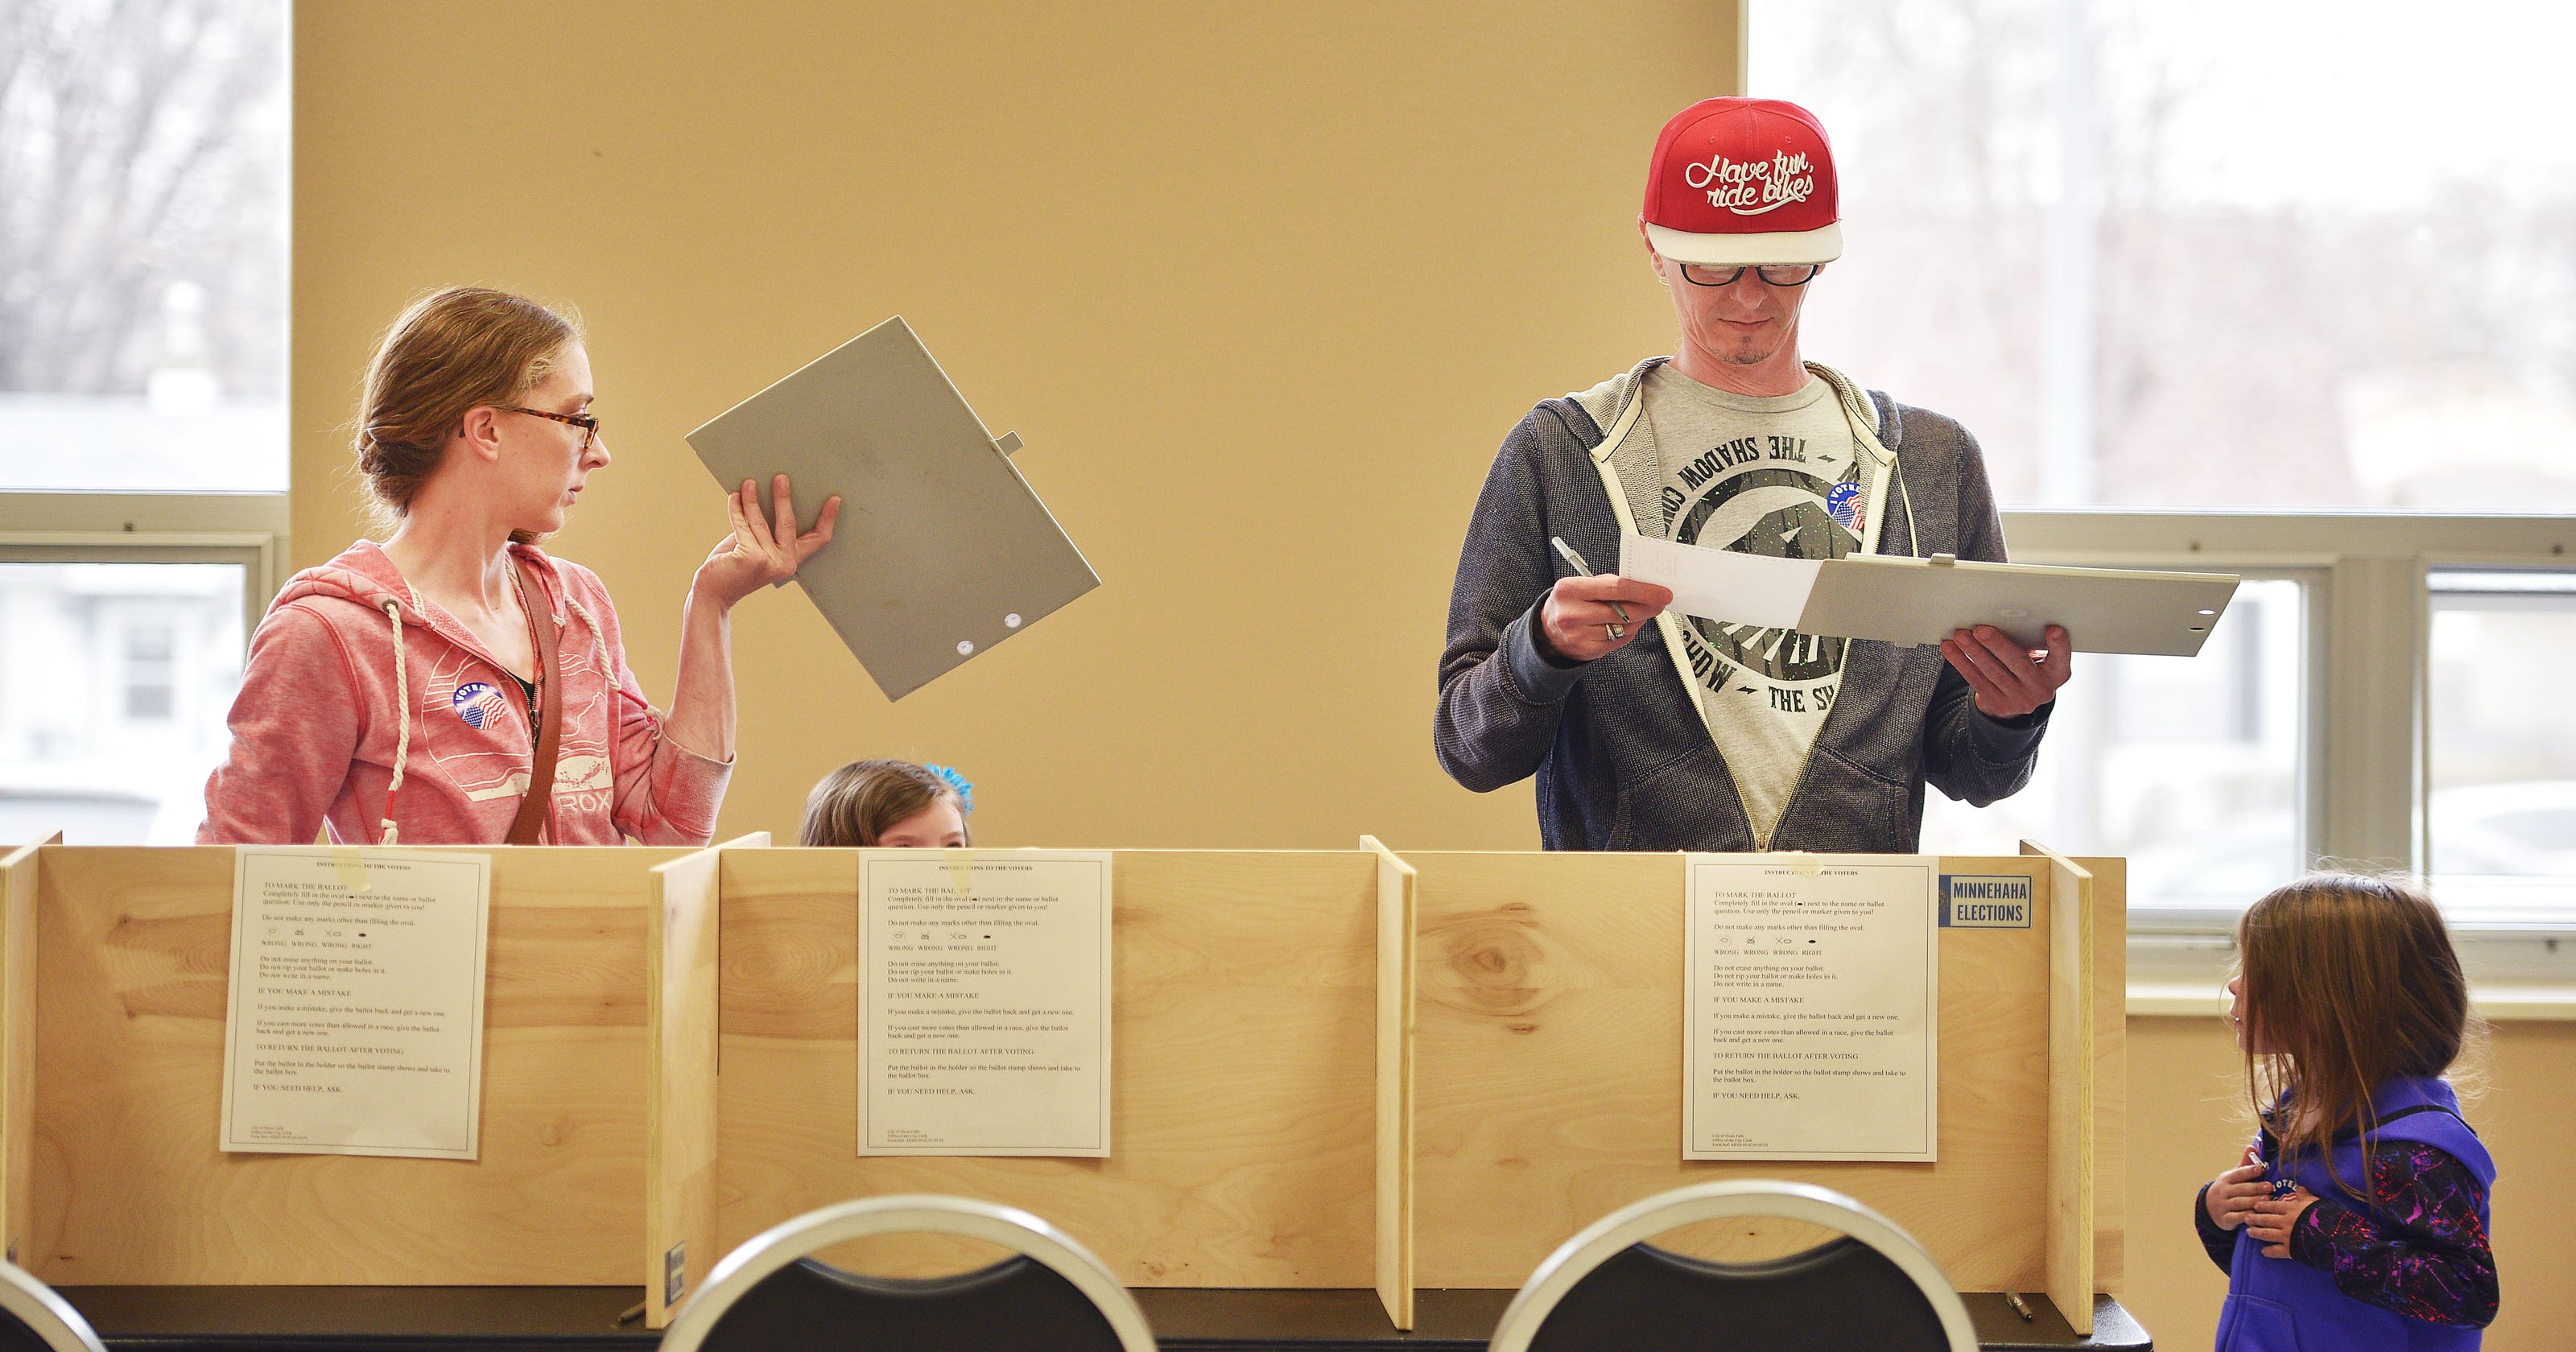 Is It Time To Rethink Elections Sioux Falls Charter Framers Think So